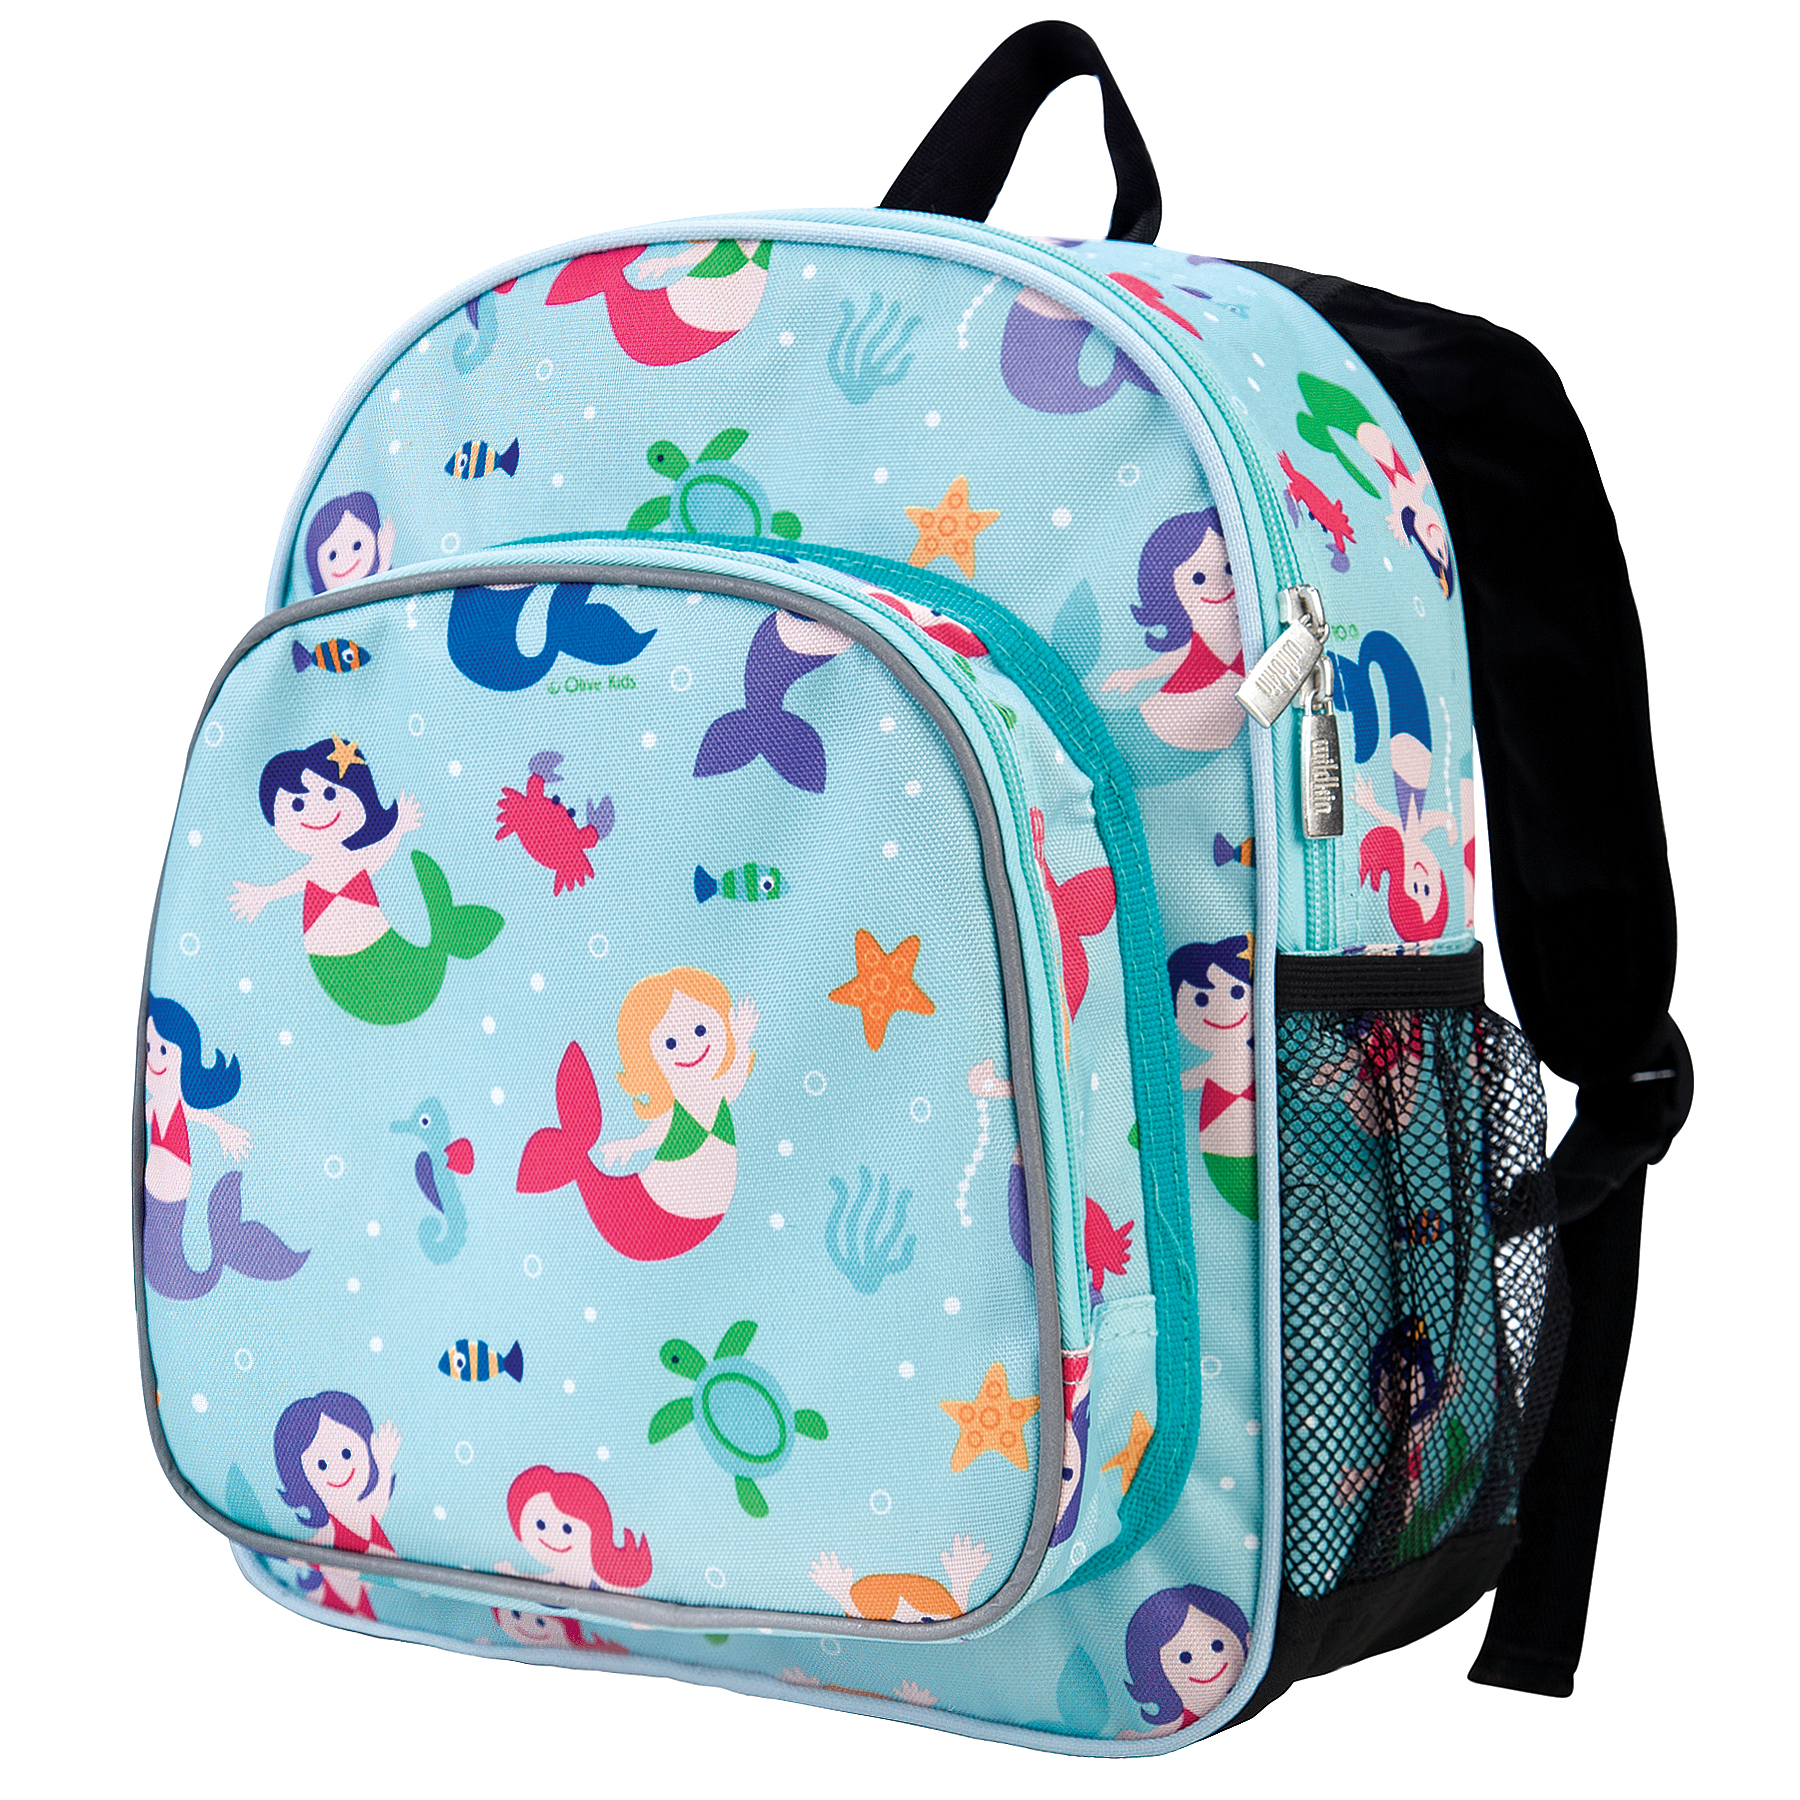 Olive Kids Mermaids 12 Inch Backpack